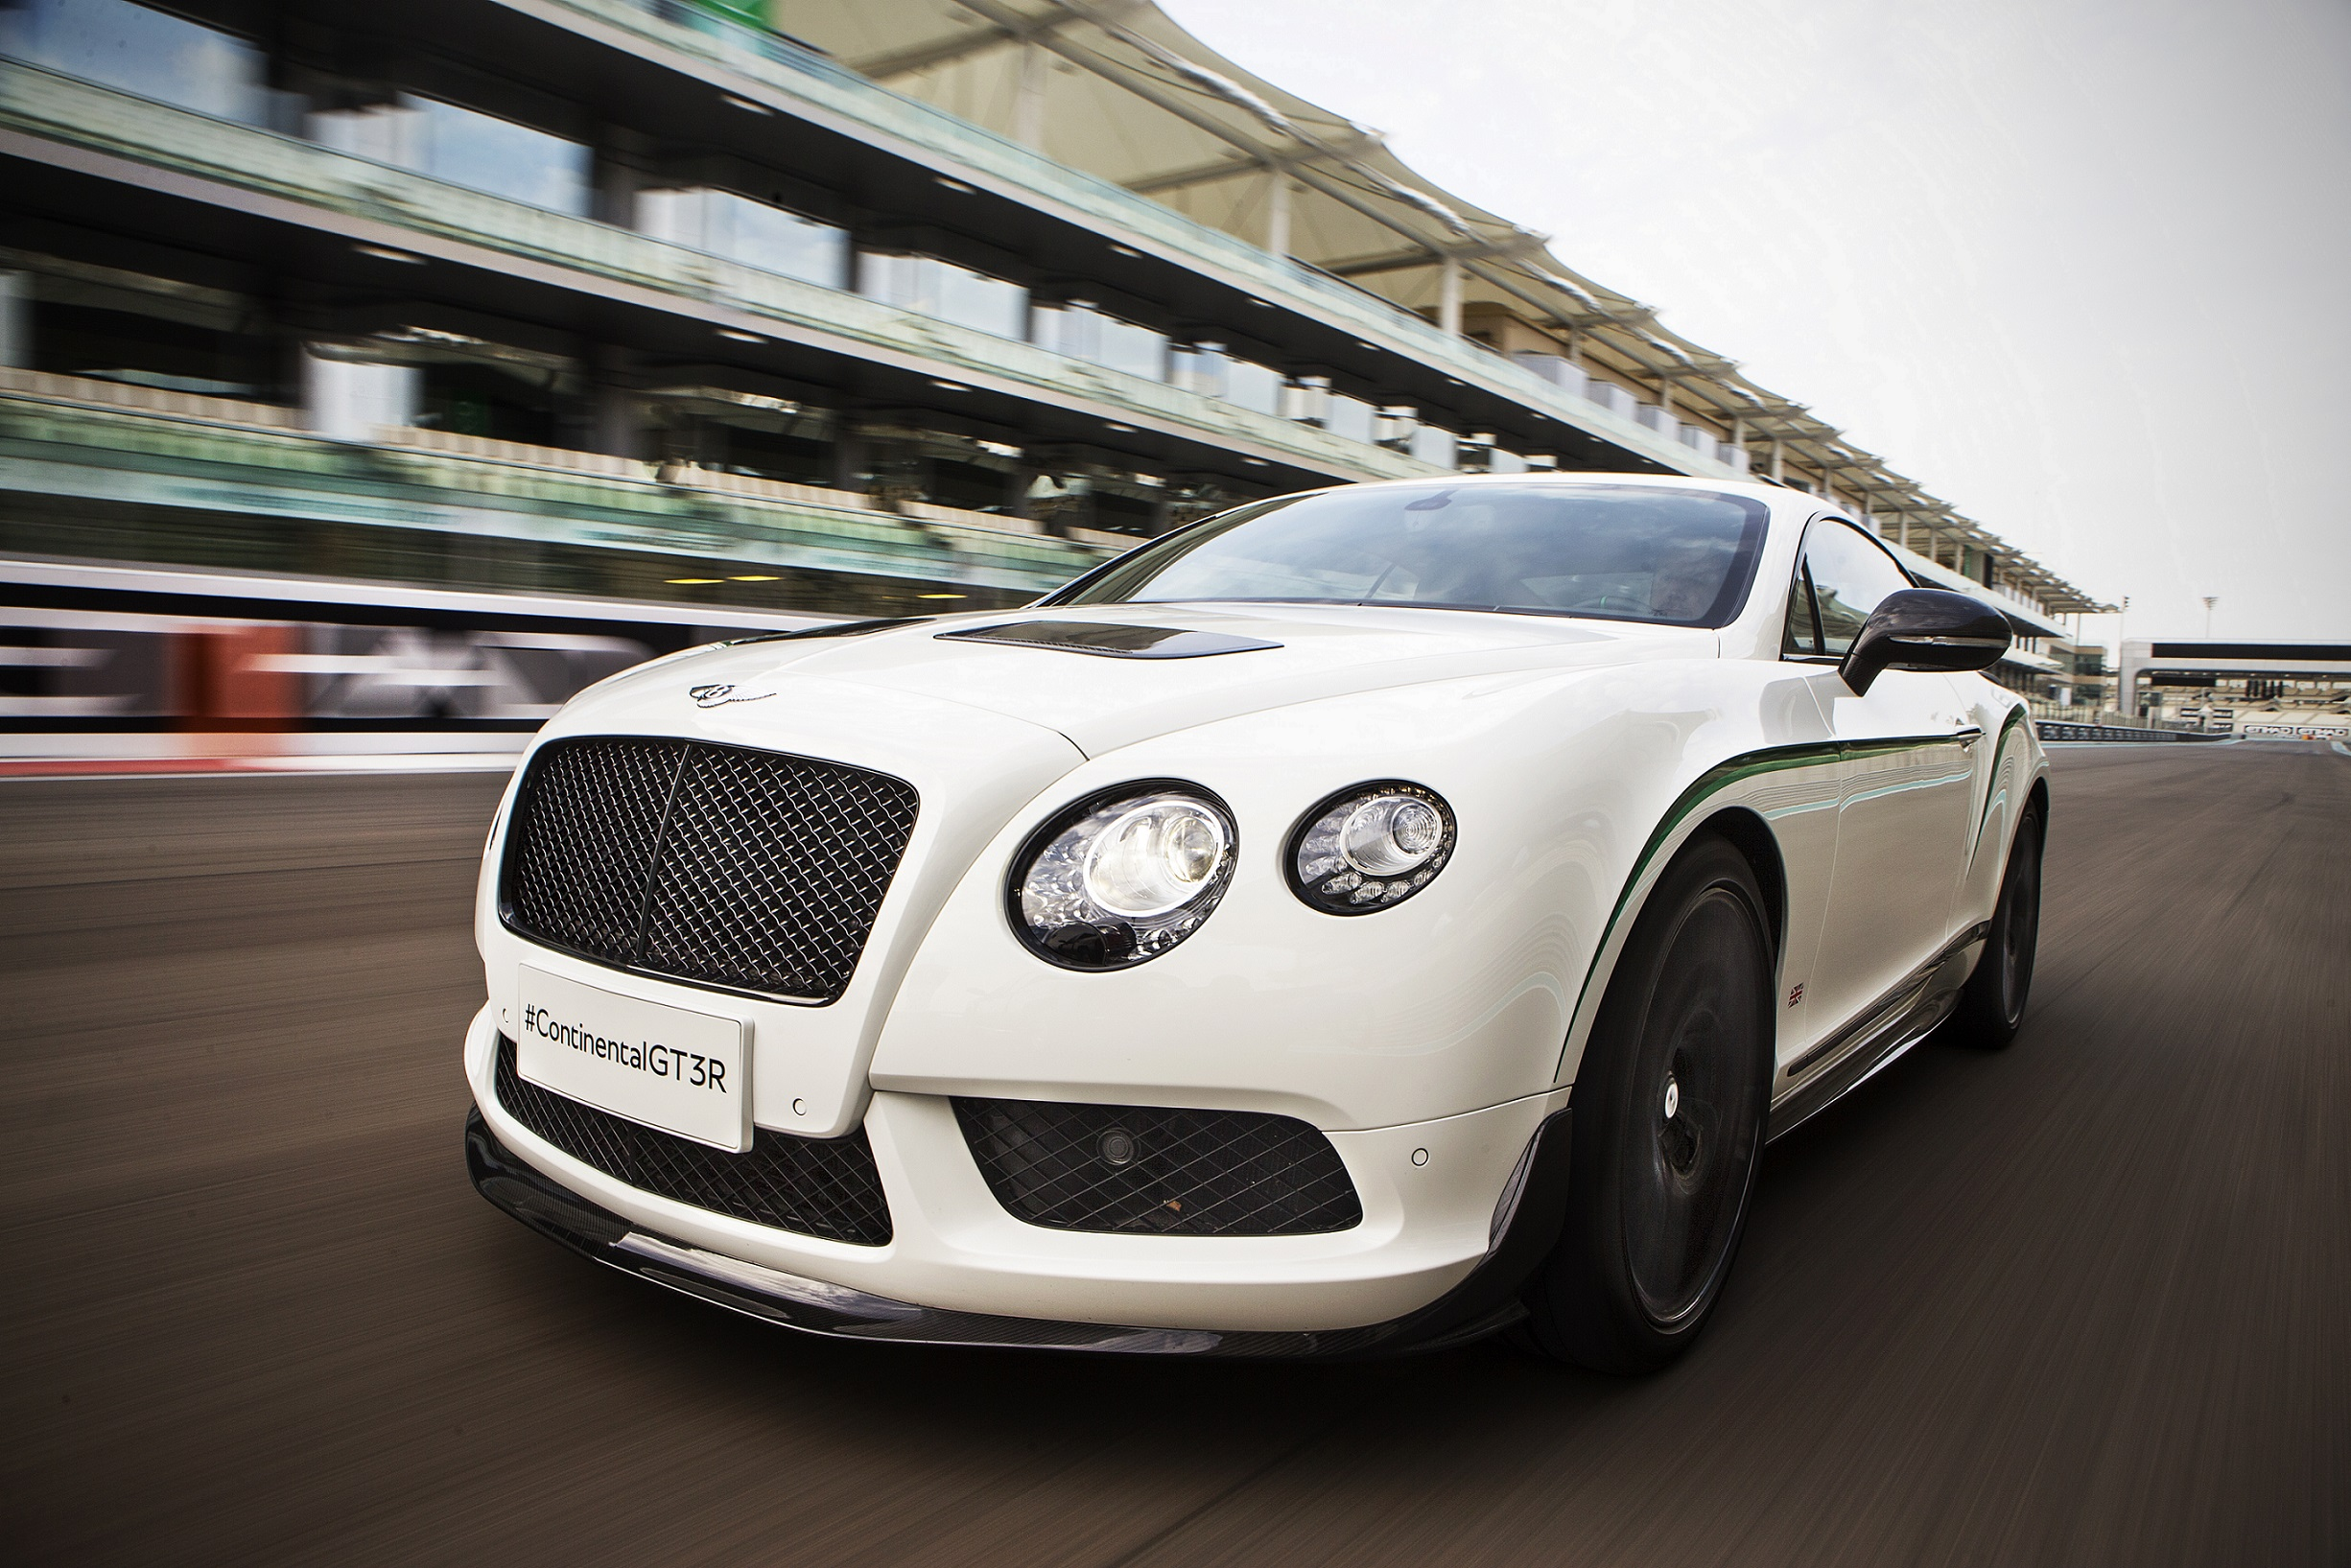 Image 2 - Bentley GT3-R.jpg